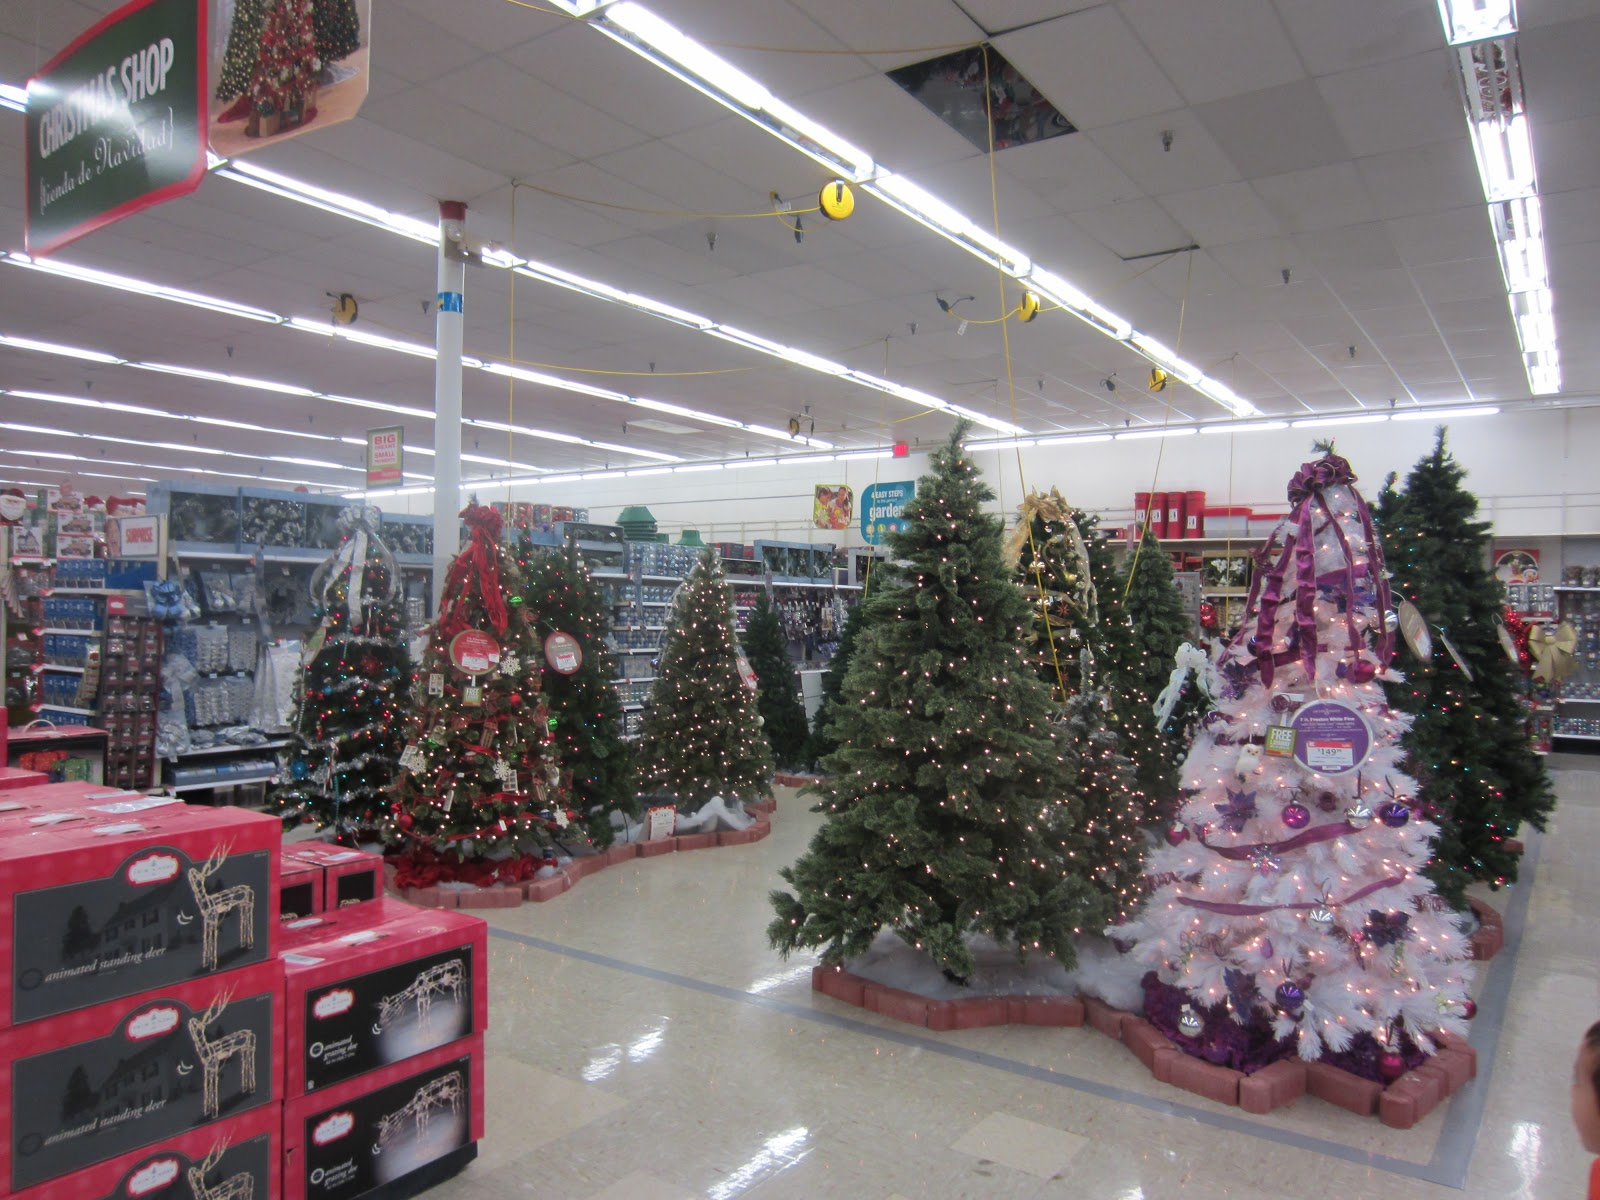 Kmart Decorations 28 Images Decor Kmart Kmart Decor Sale Photograph Kmart Deco 97 Best